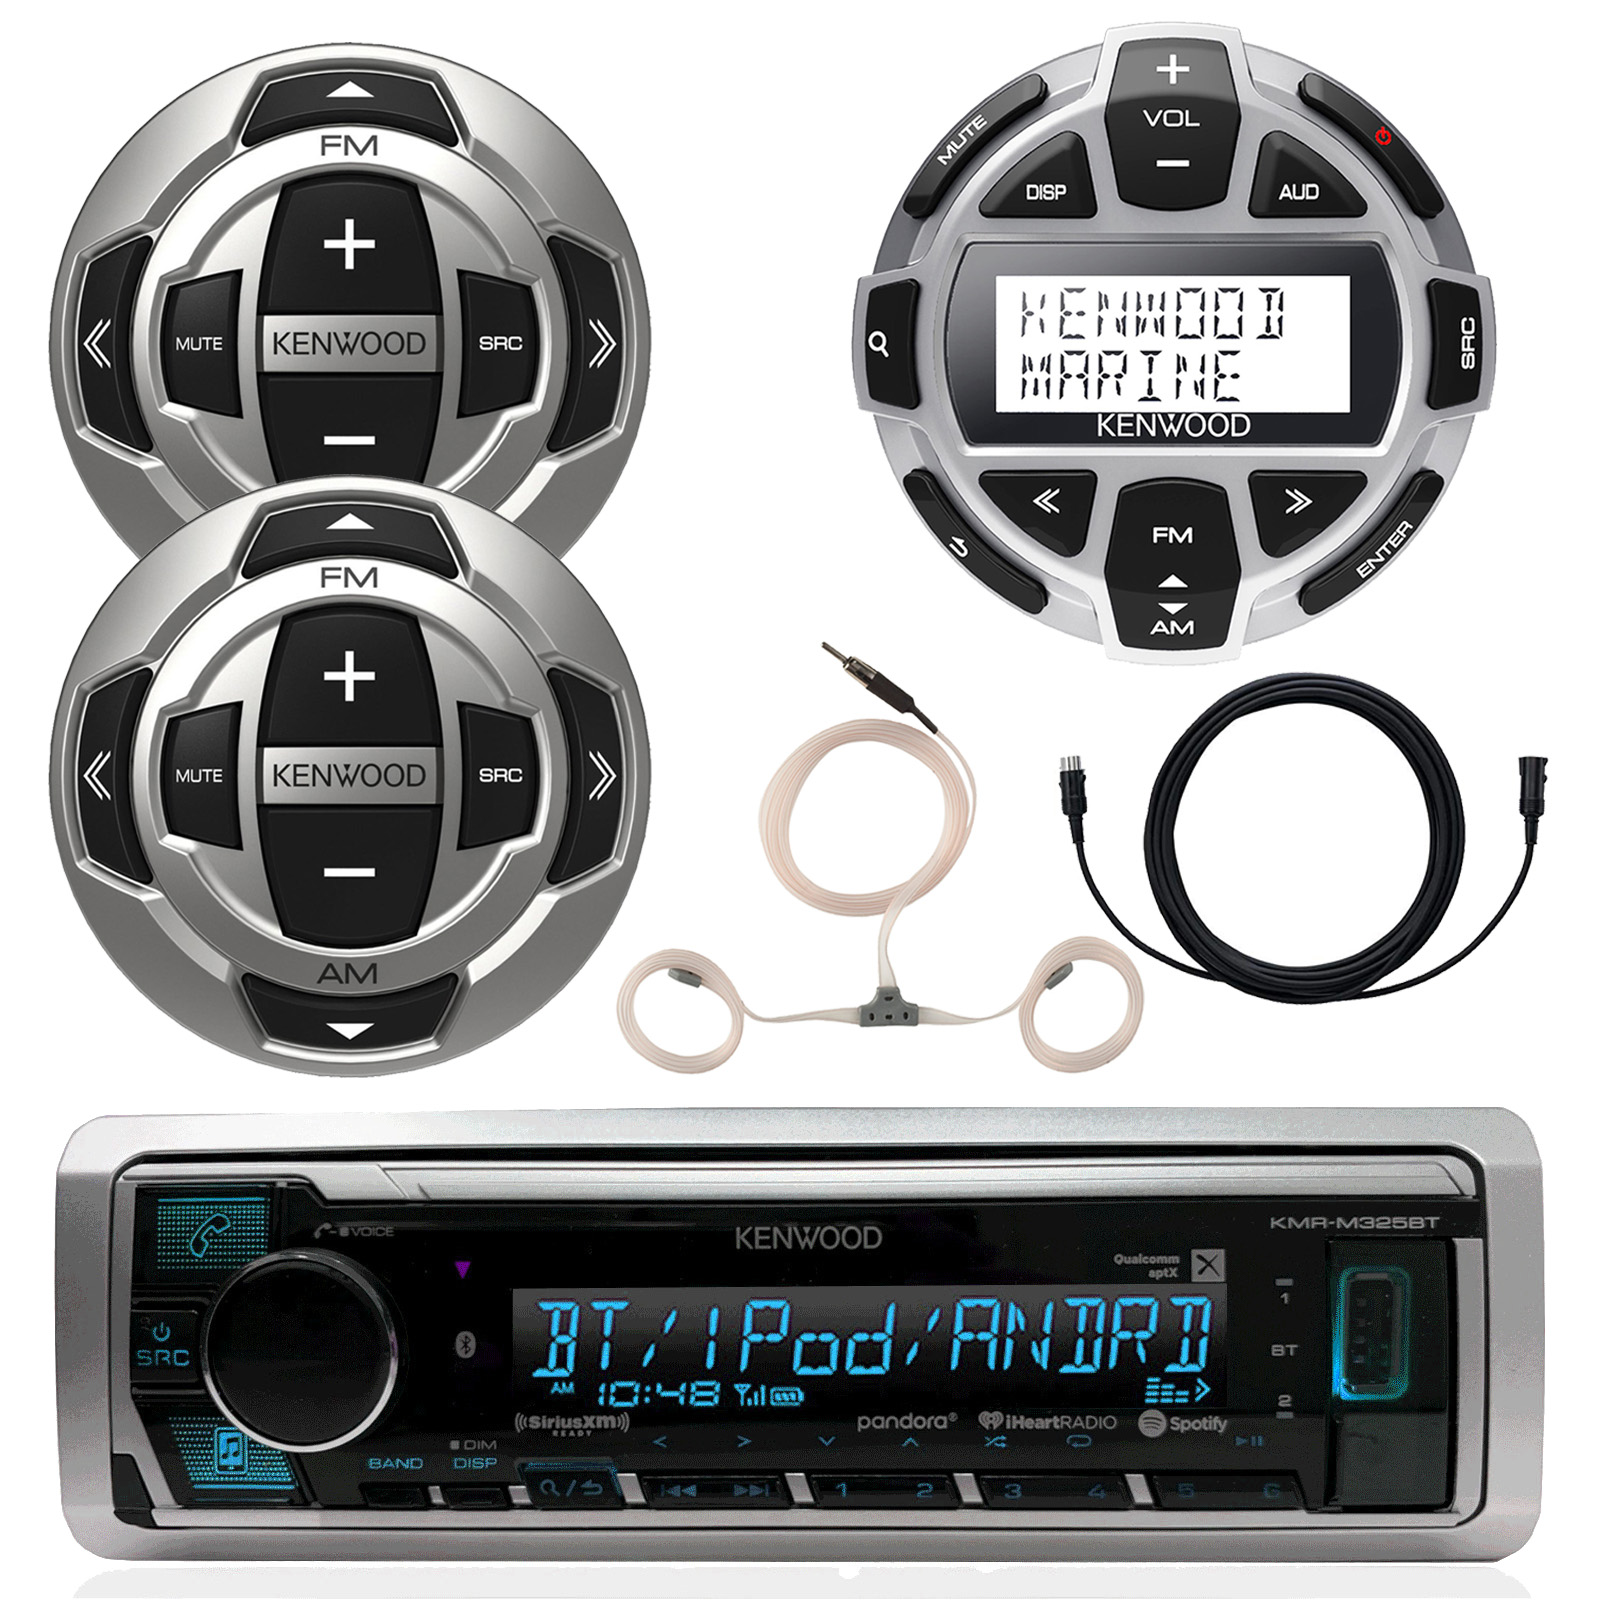 """Kenwood Marine Boat Yacht Digital Media USB AUX Bluetooth Stereo Receiver (No CD), 1x Kenwood Digital LCD Display Wired Remote, 2x Wired Remote, 22"""" Enrock AM/FM Antenna, 7 Meter 22 Ft Extension"""